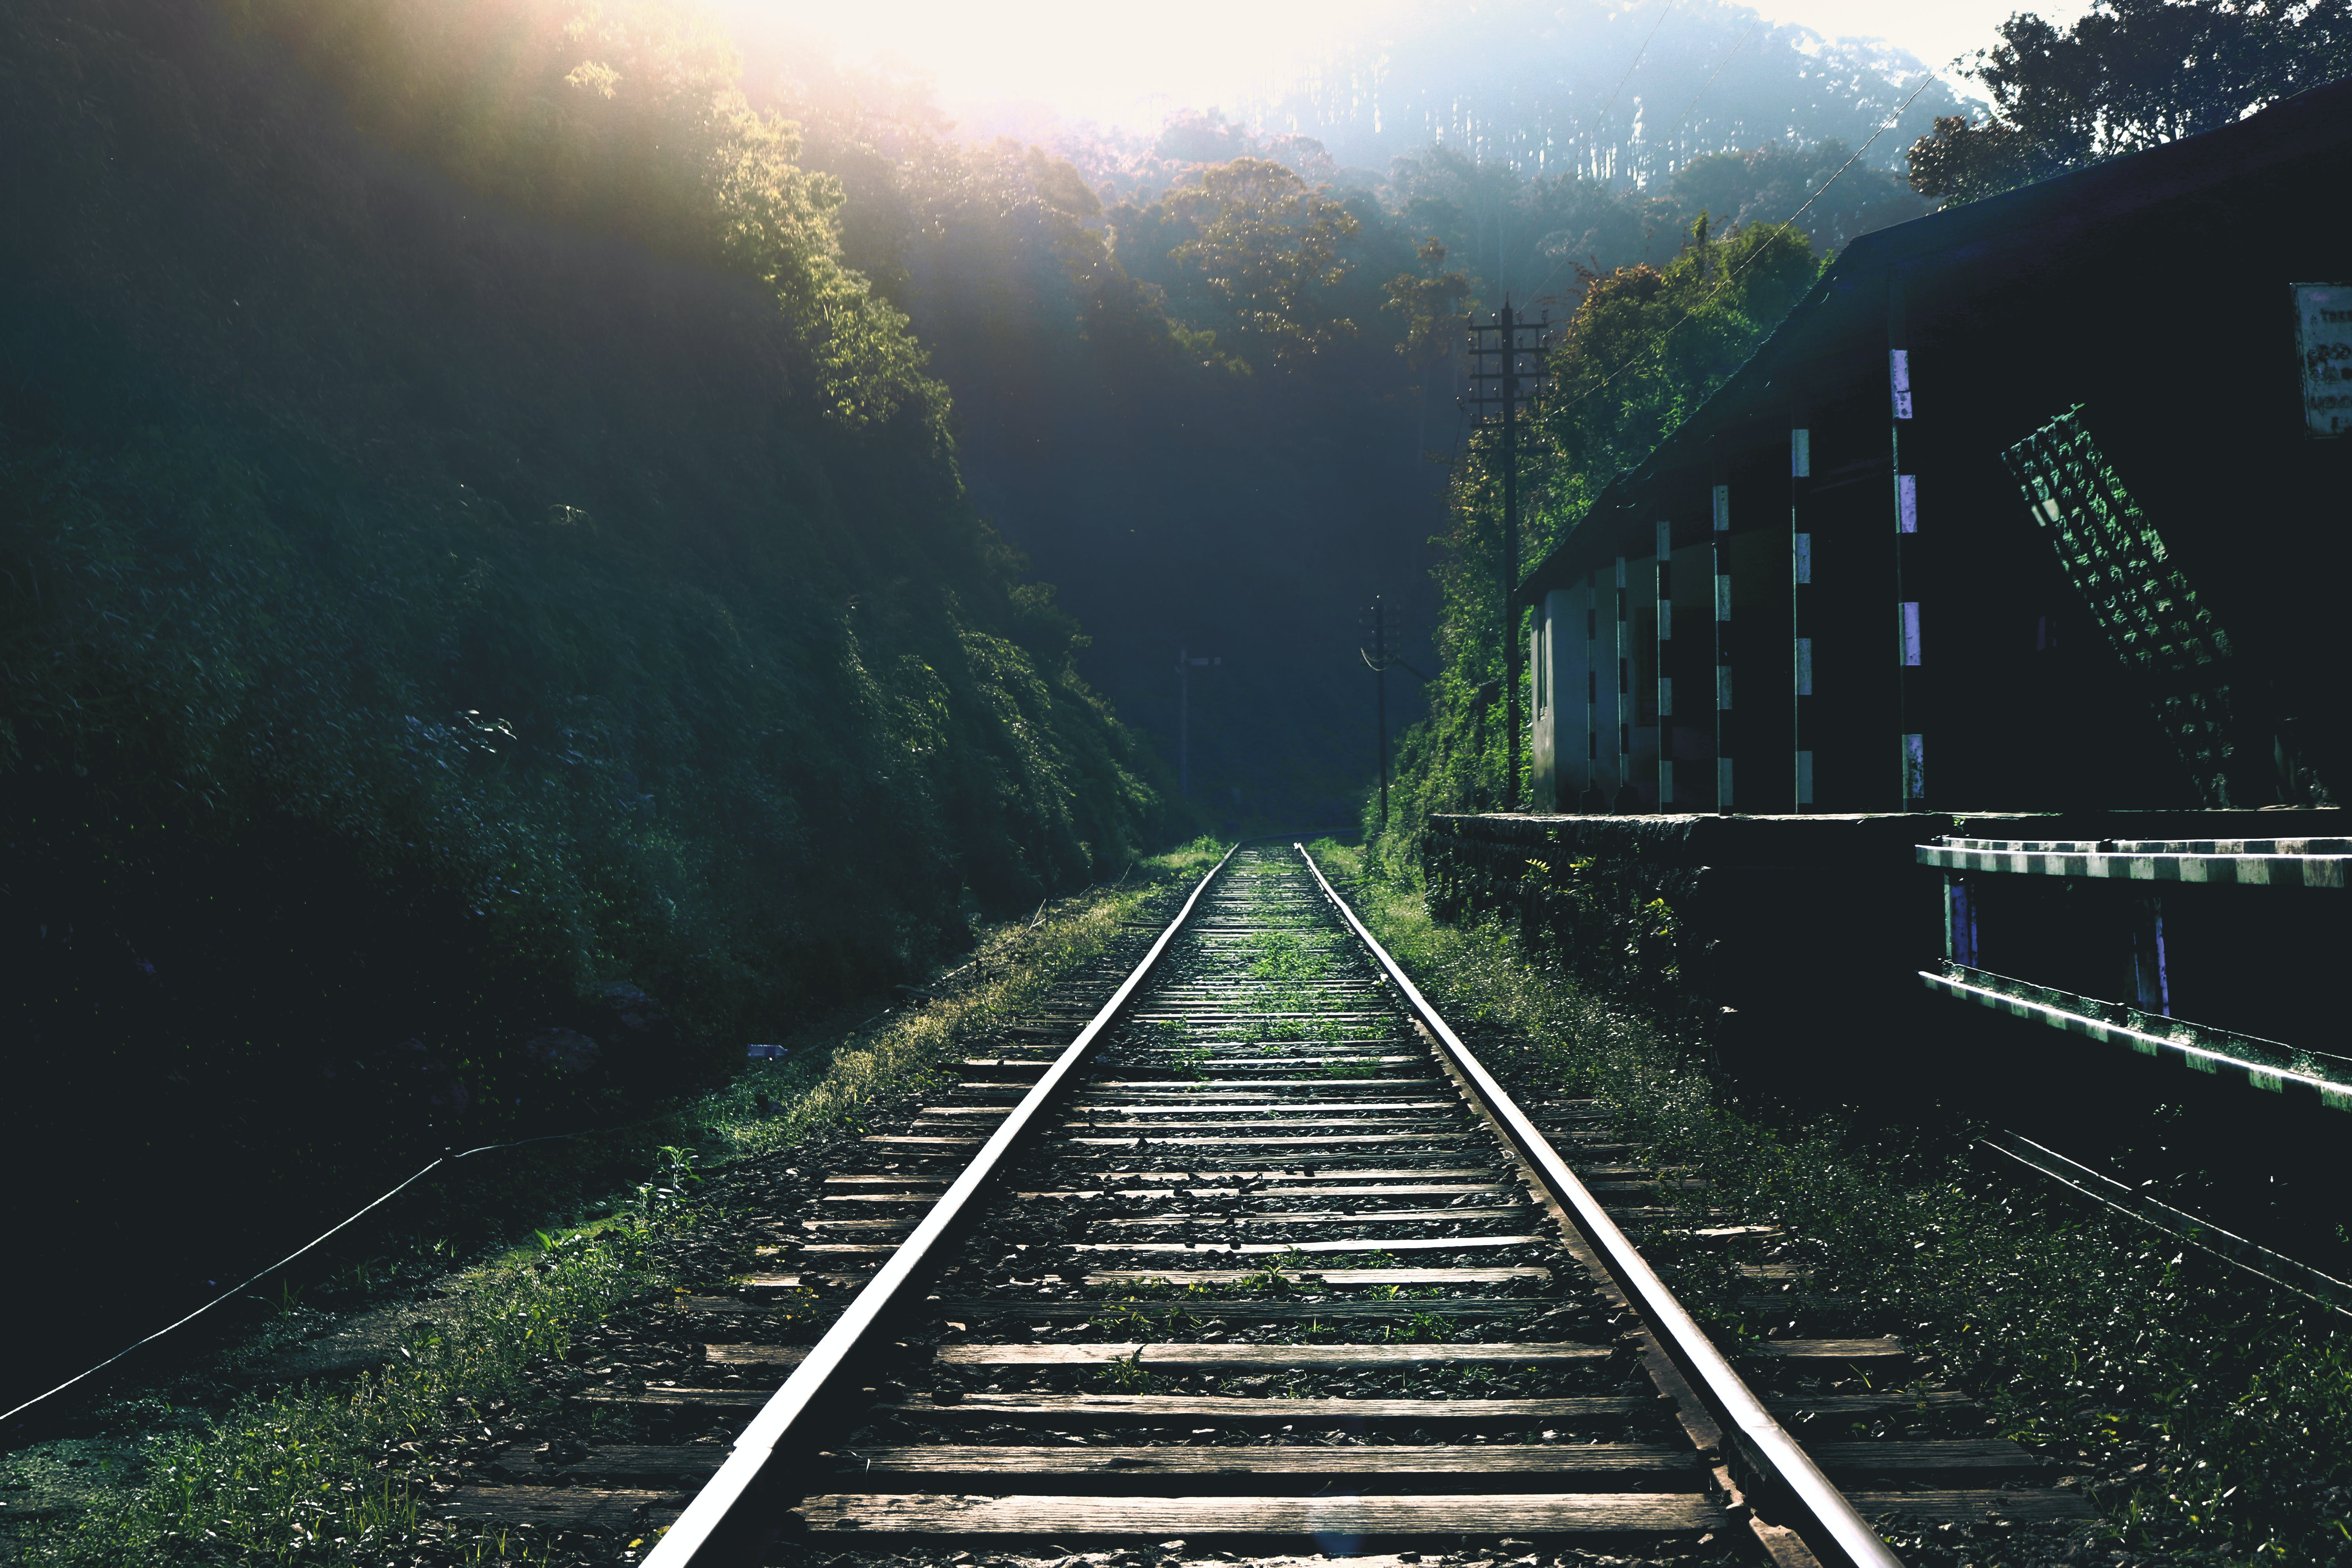 Free stock photo of nature, forest, trees, railway